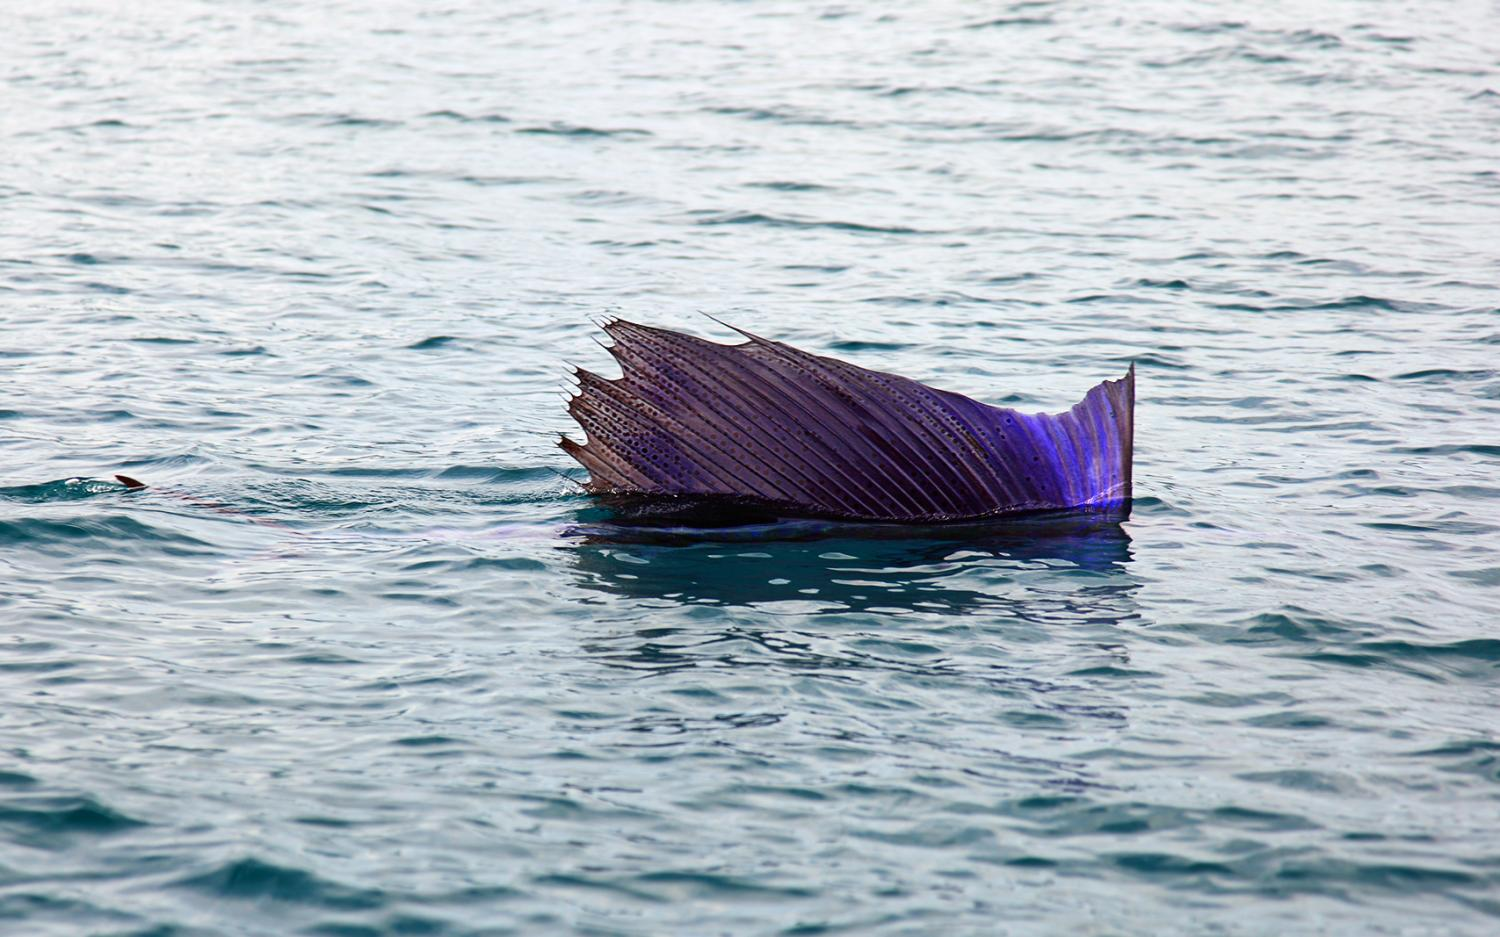 sailfish found to use group hunting technique to capture more sardines